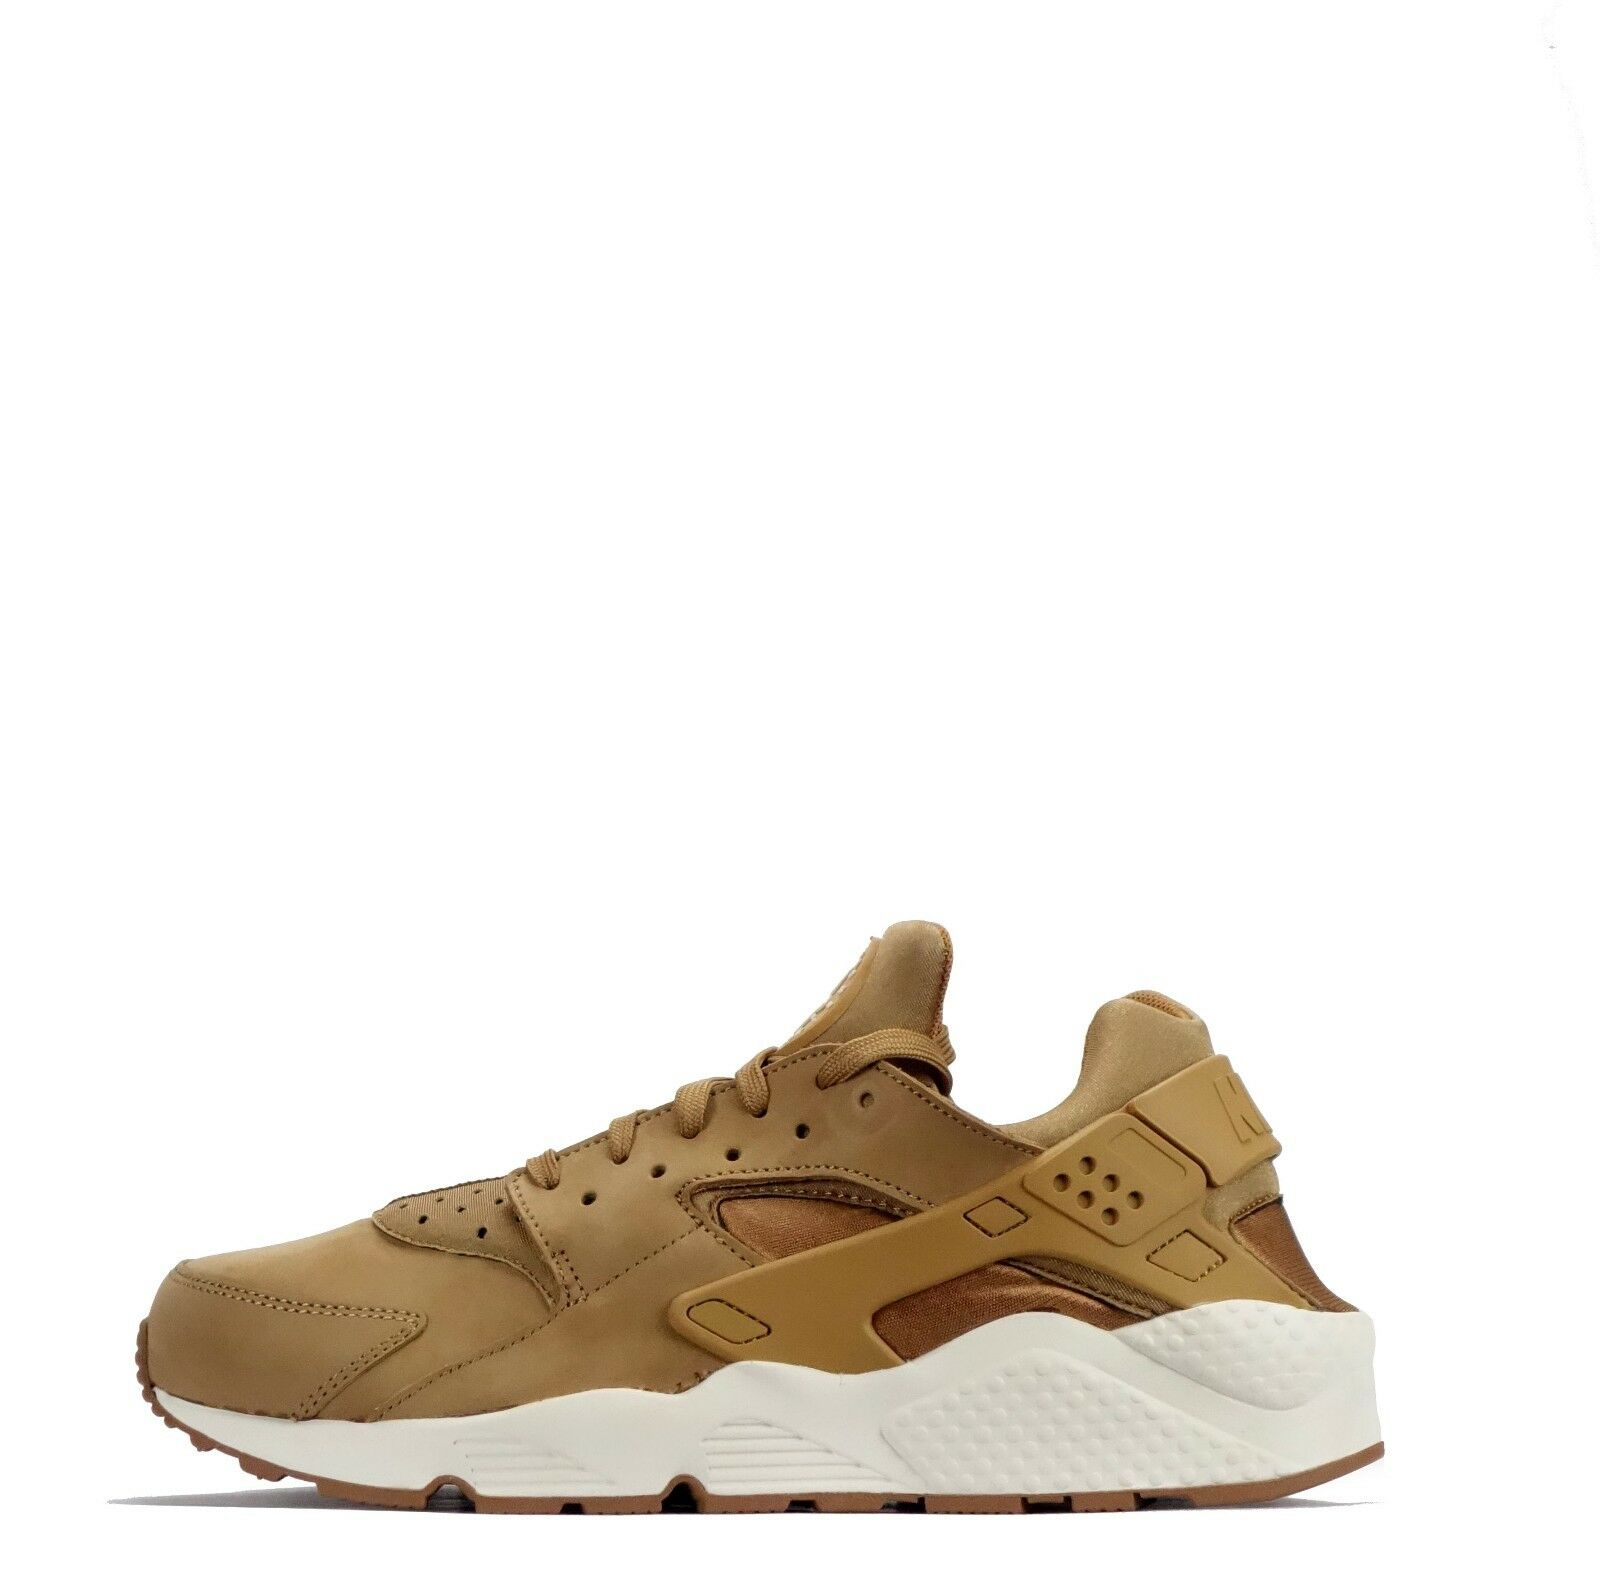 Nike Air Huarache Smooth Nubuck Casual Style Men's Shoes in Flax Brown